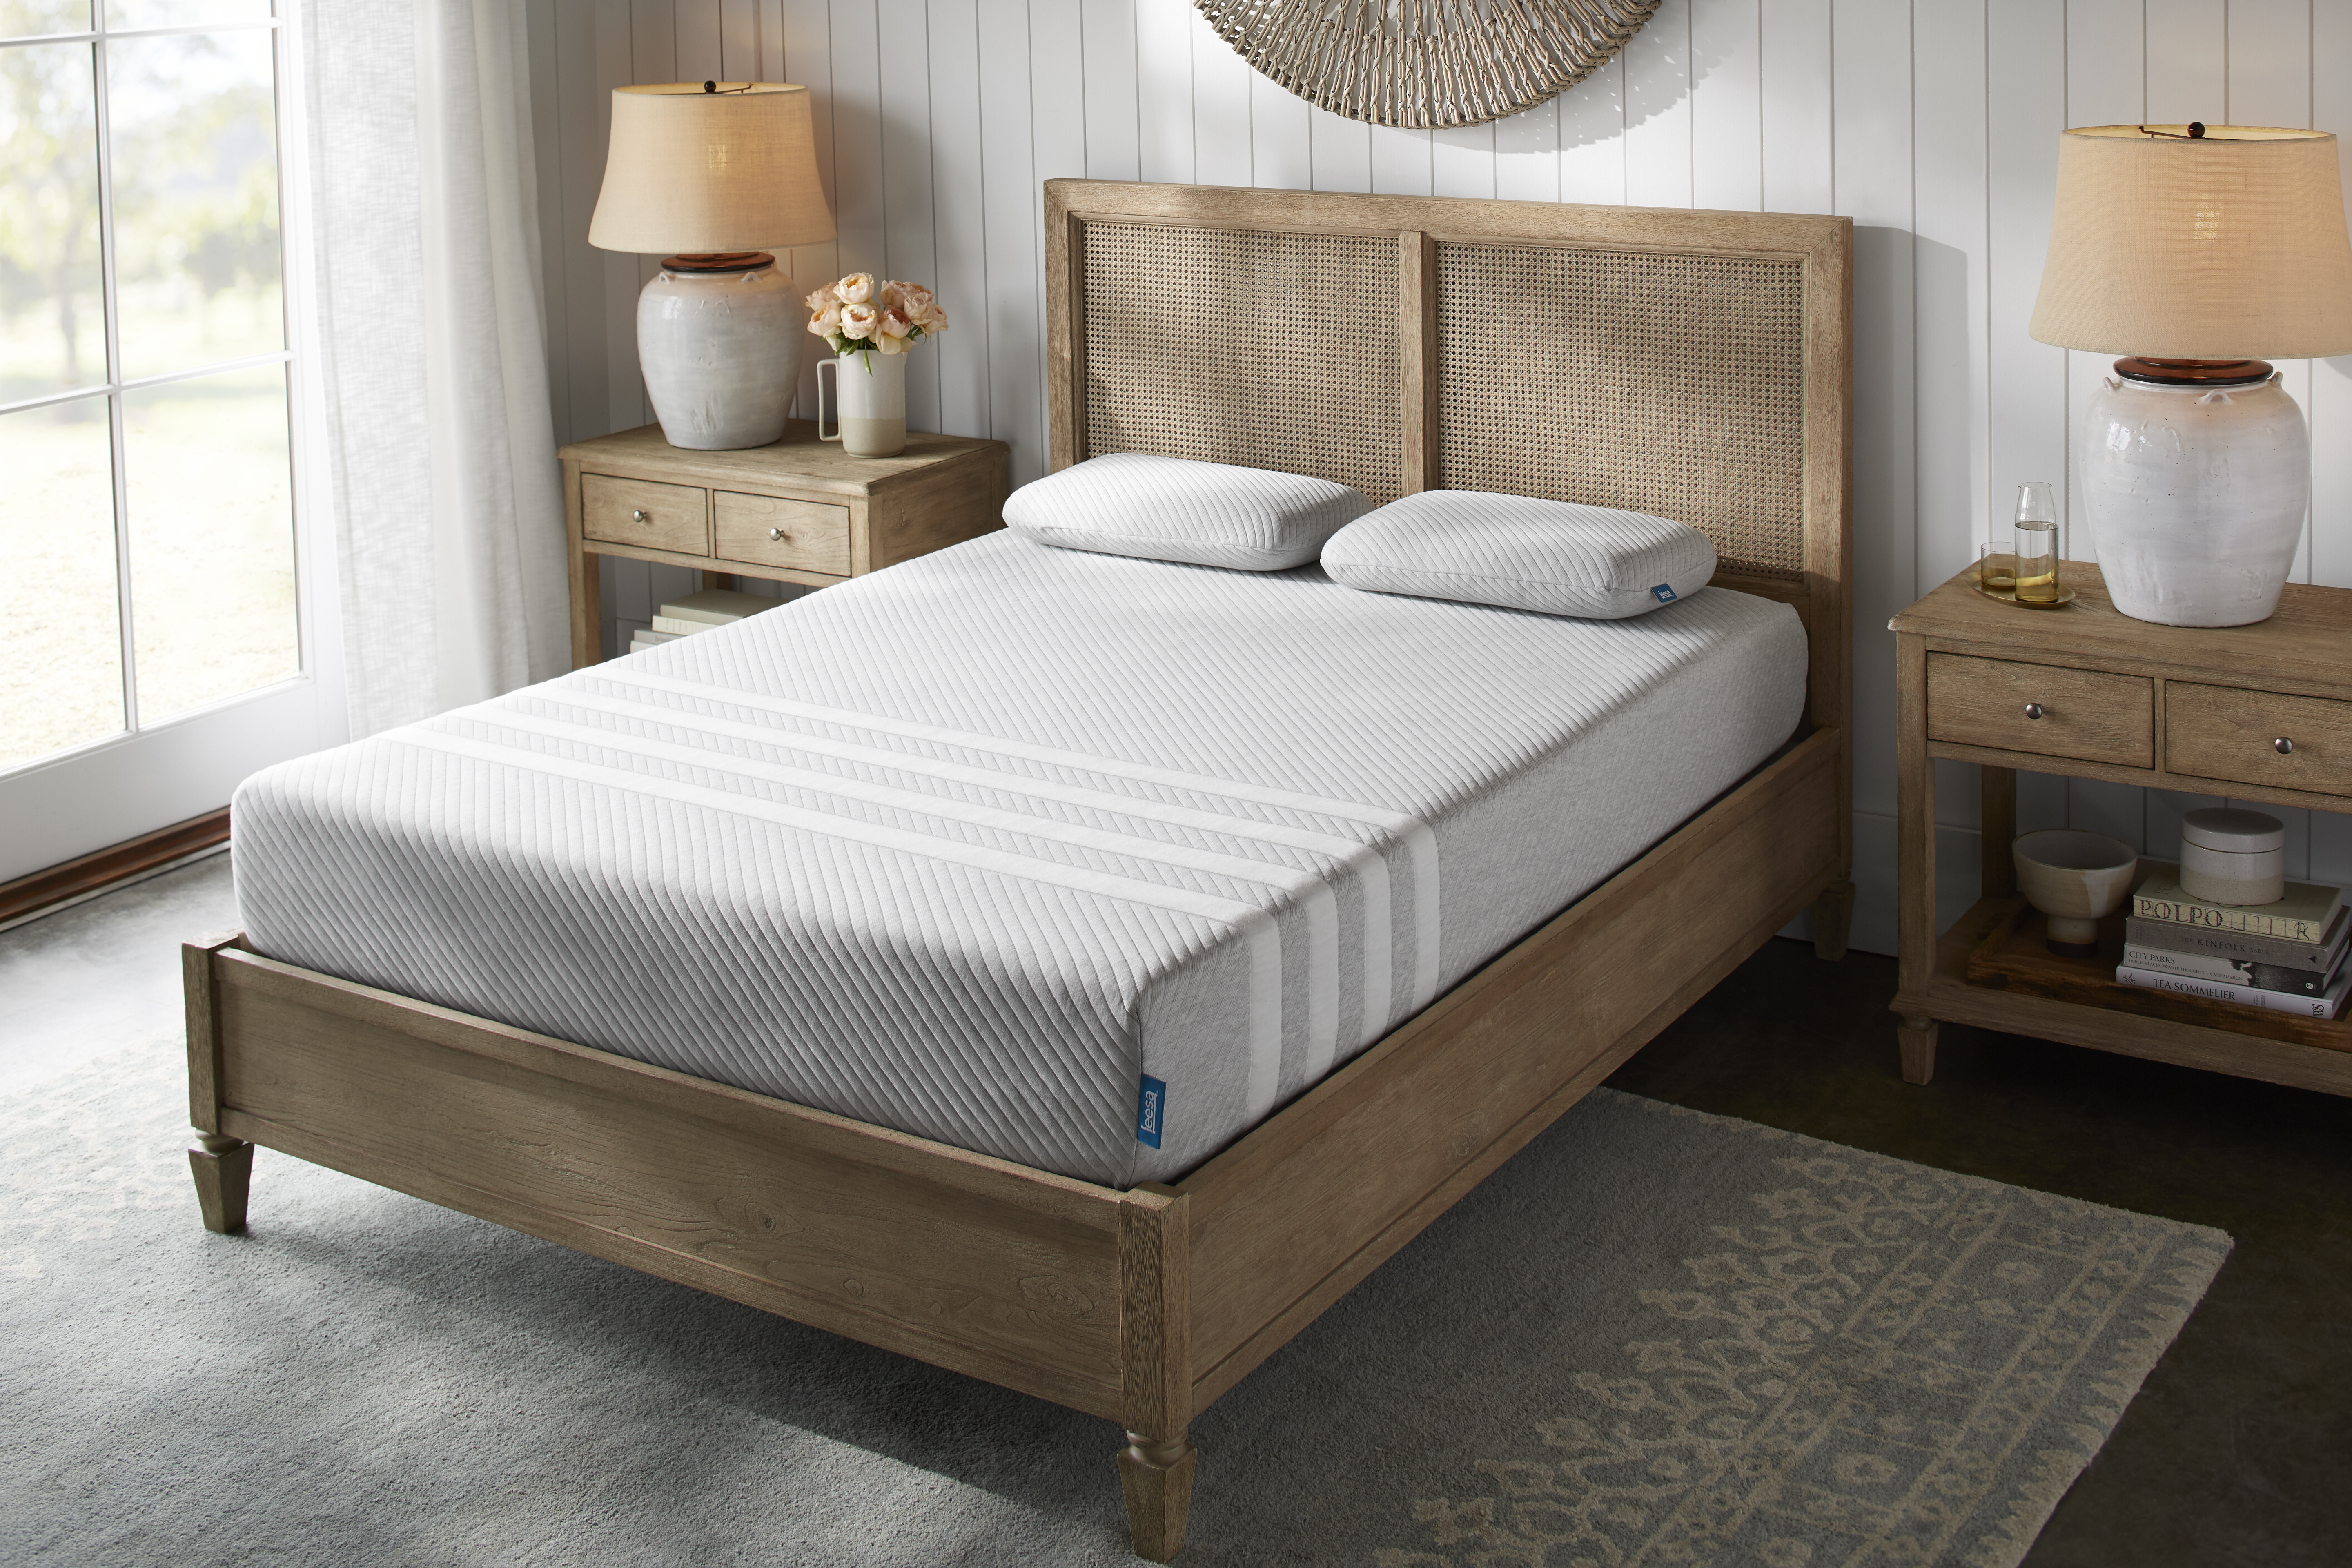 outlet of discount tx mattress awesome furniture and yoakum barn barns